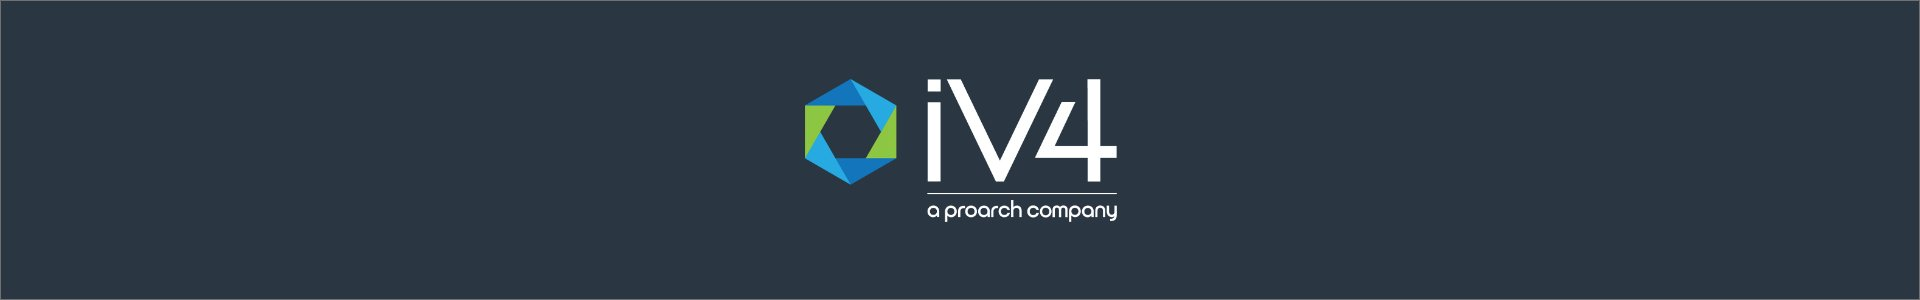 Spinpanel helps iV4 with self-service